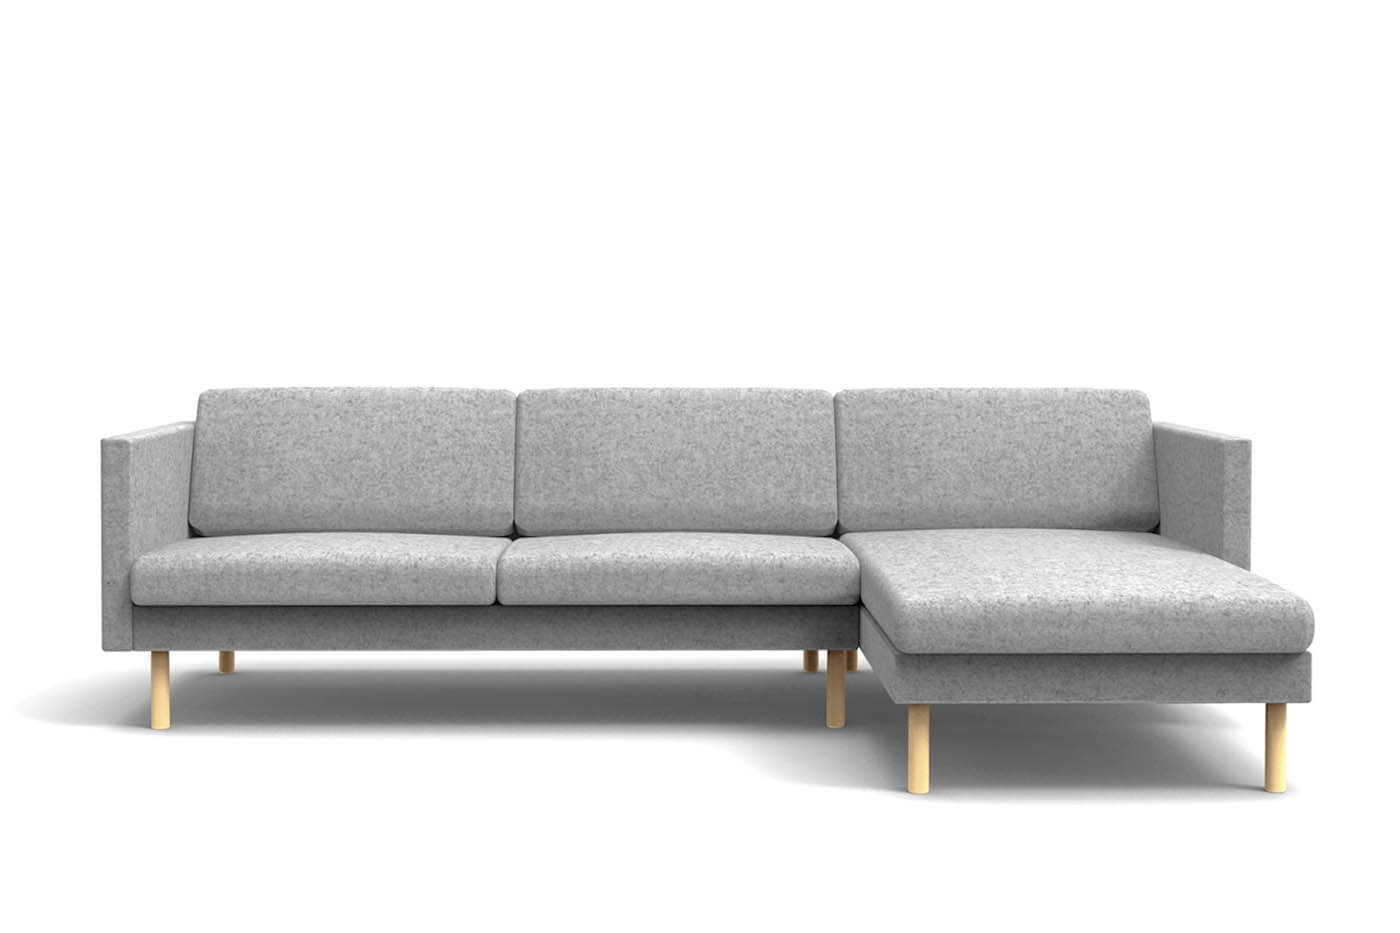 2017 Leaf Sofa Chaise Lounge Left – Oot Oot Studio With Chaise Lounge Couches (View 10 of 15)